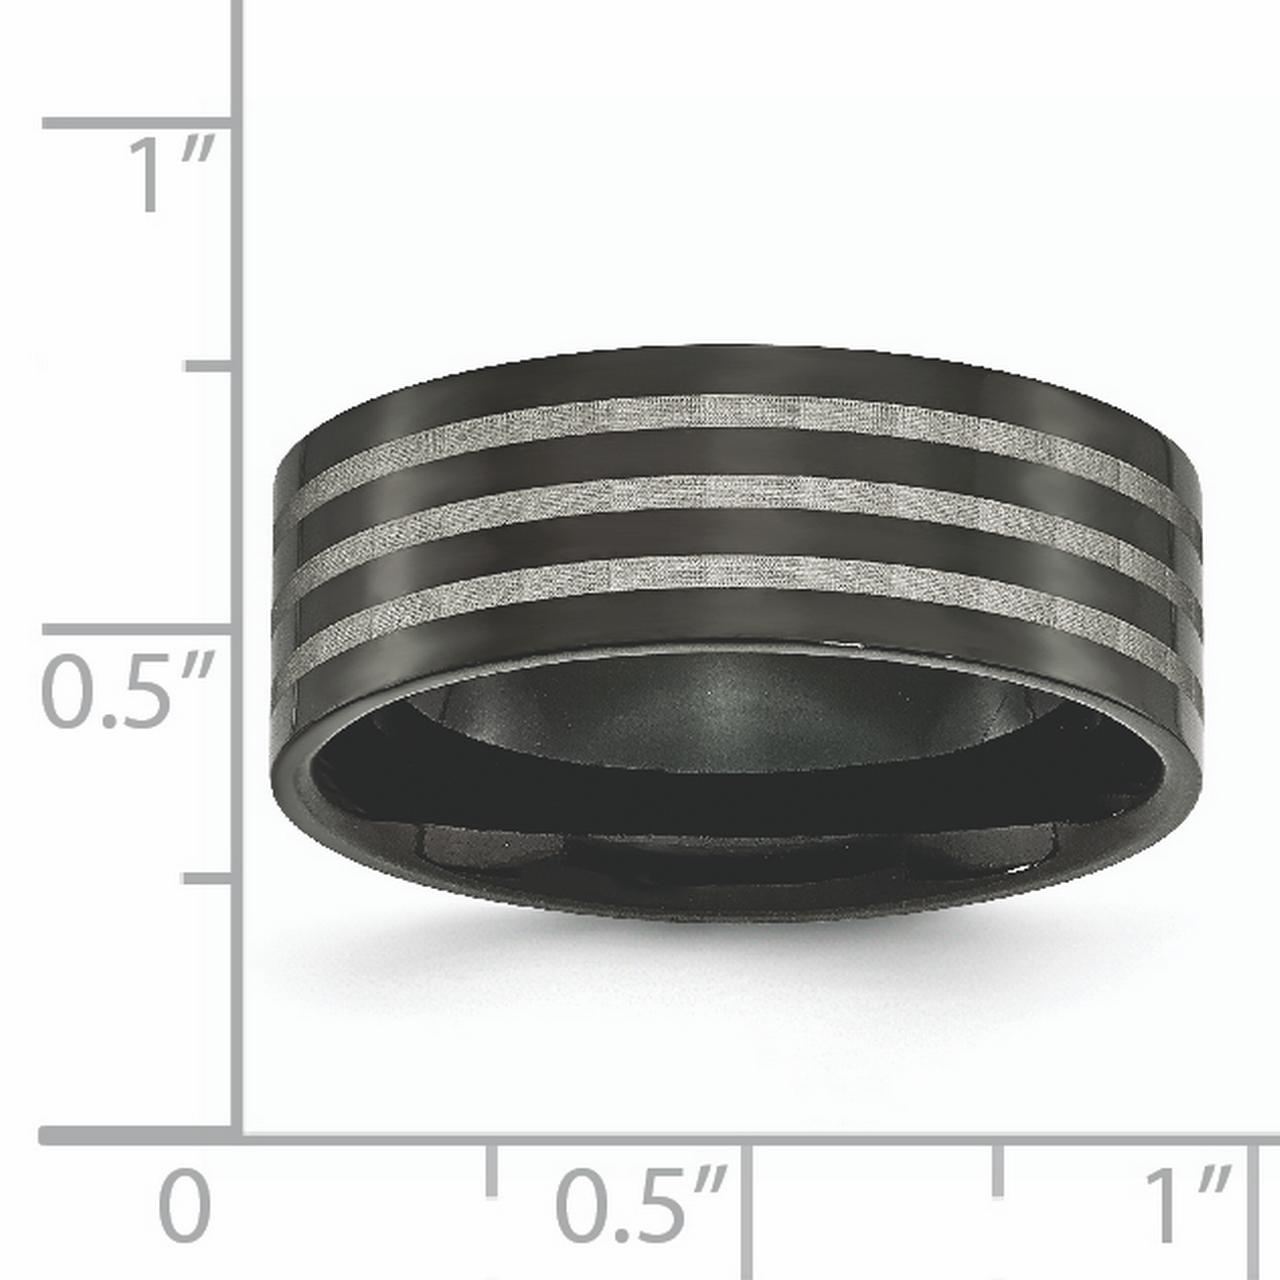 Titanium 8mm Black Plated Stripes Wedding Ring Band Size 12.50 Fashion Jewelry Gifts For Women For Her - image 1 of 6